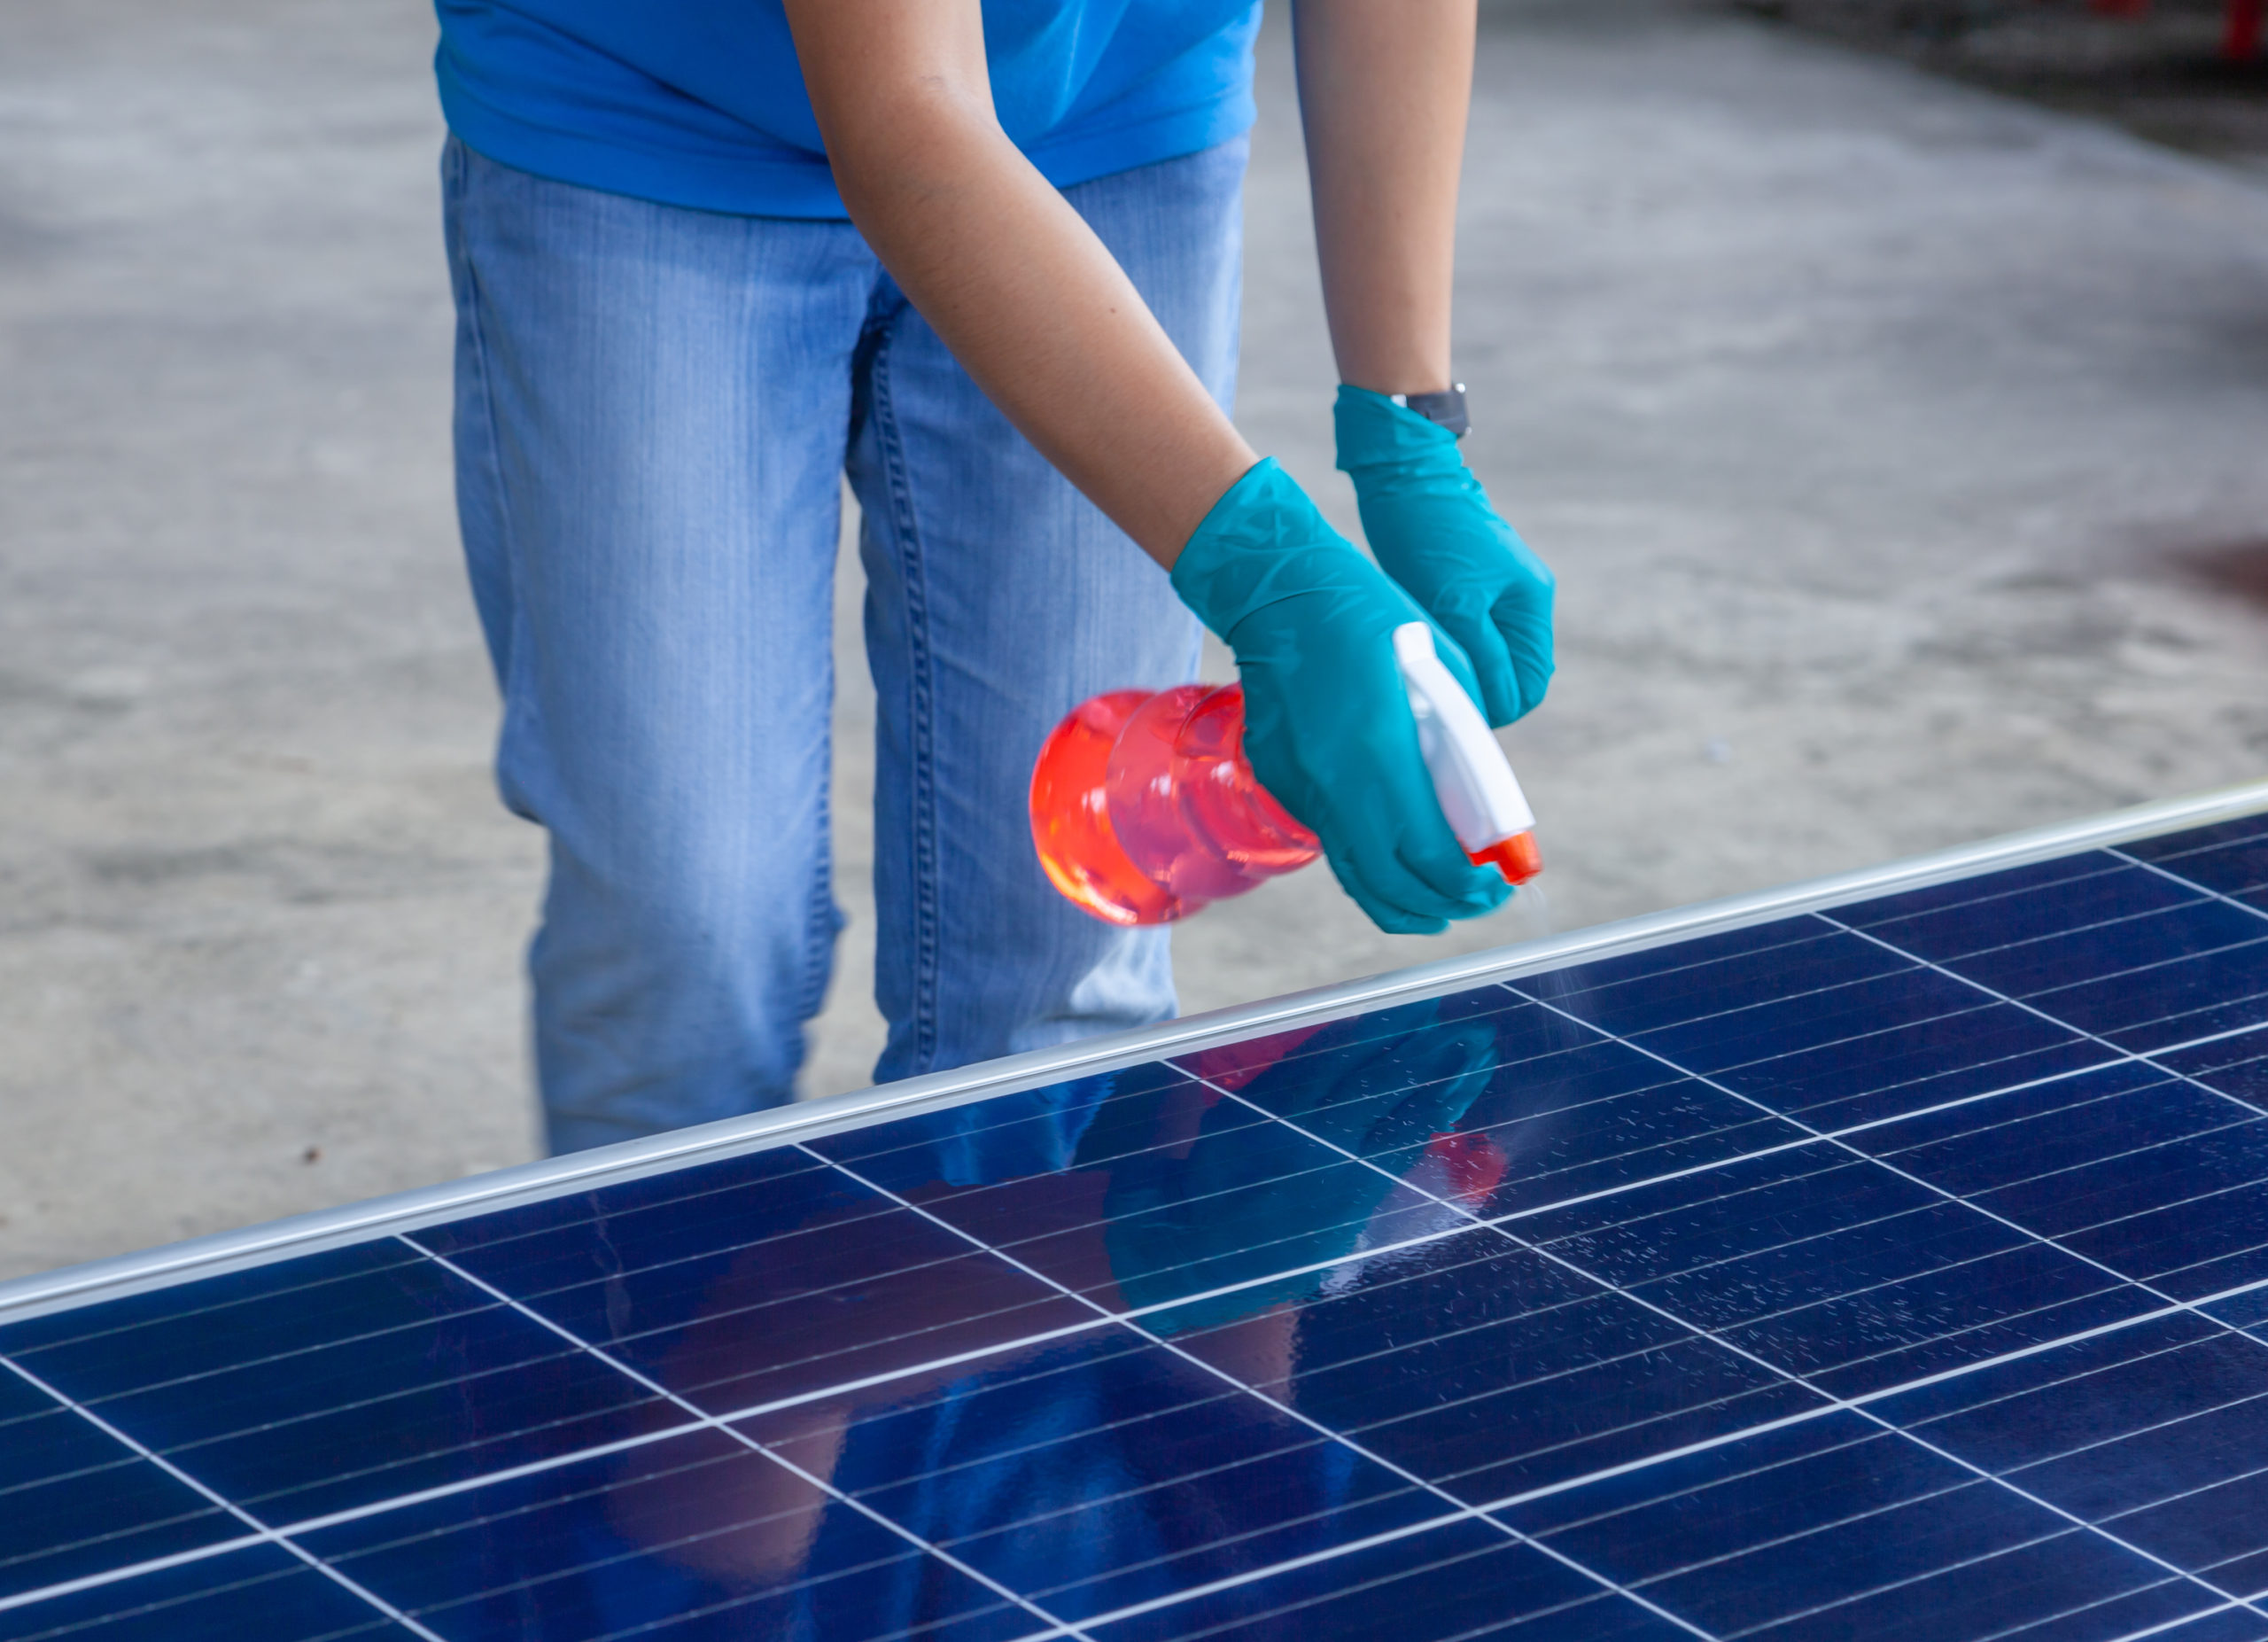 How To Clean Solar Panels On Roof? - Solyndra